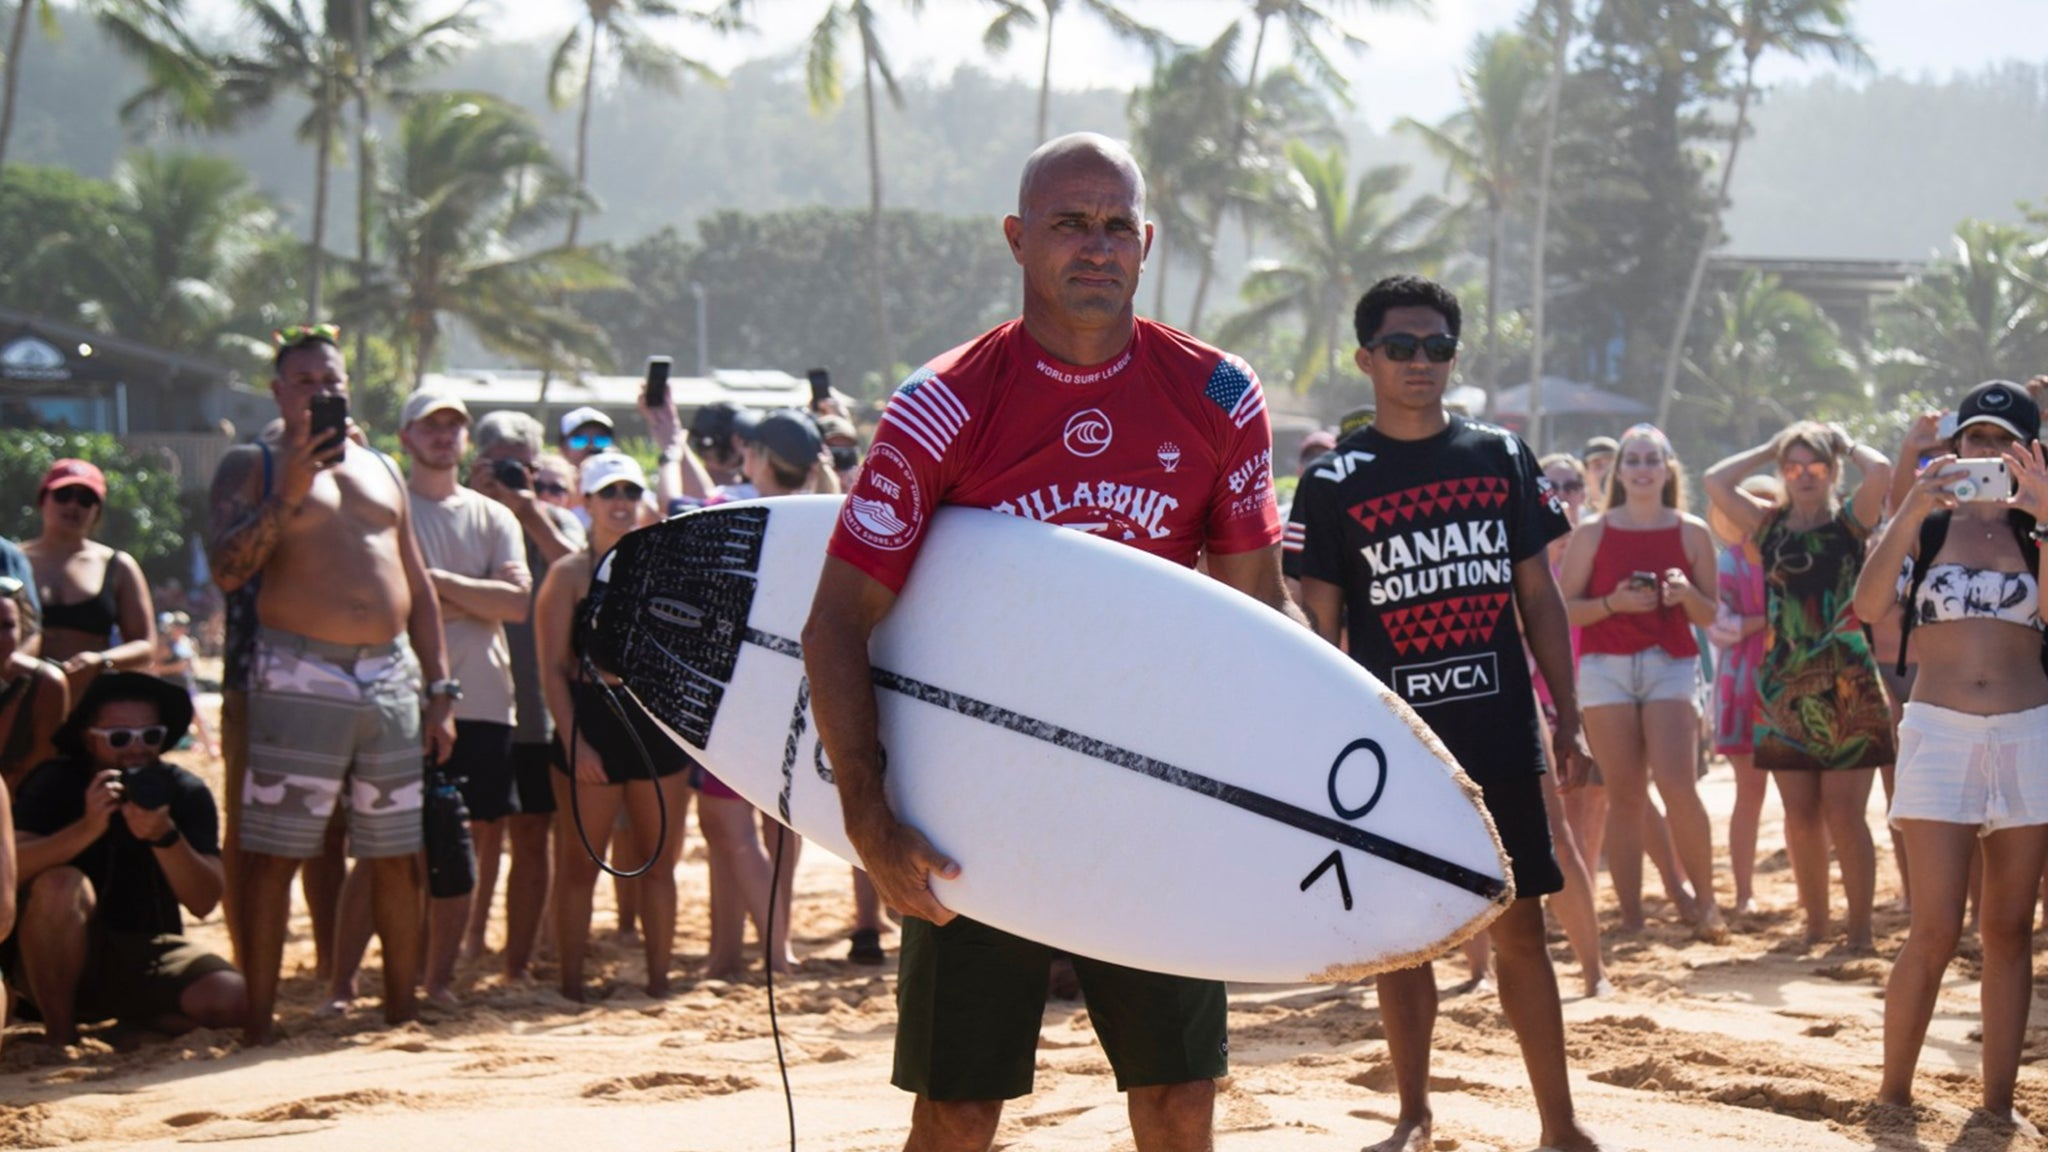 Kelly Slater Soup Bowl